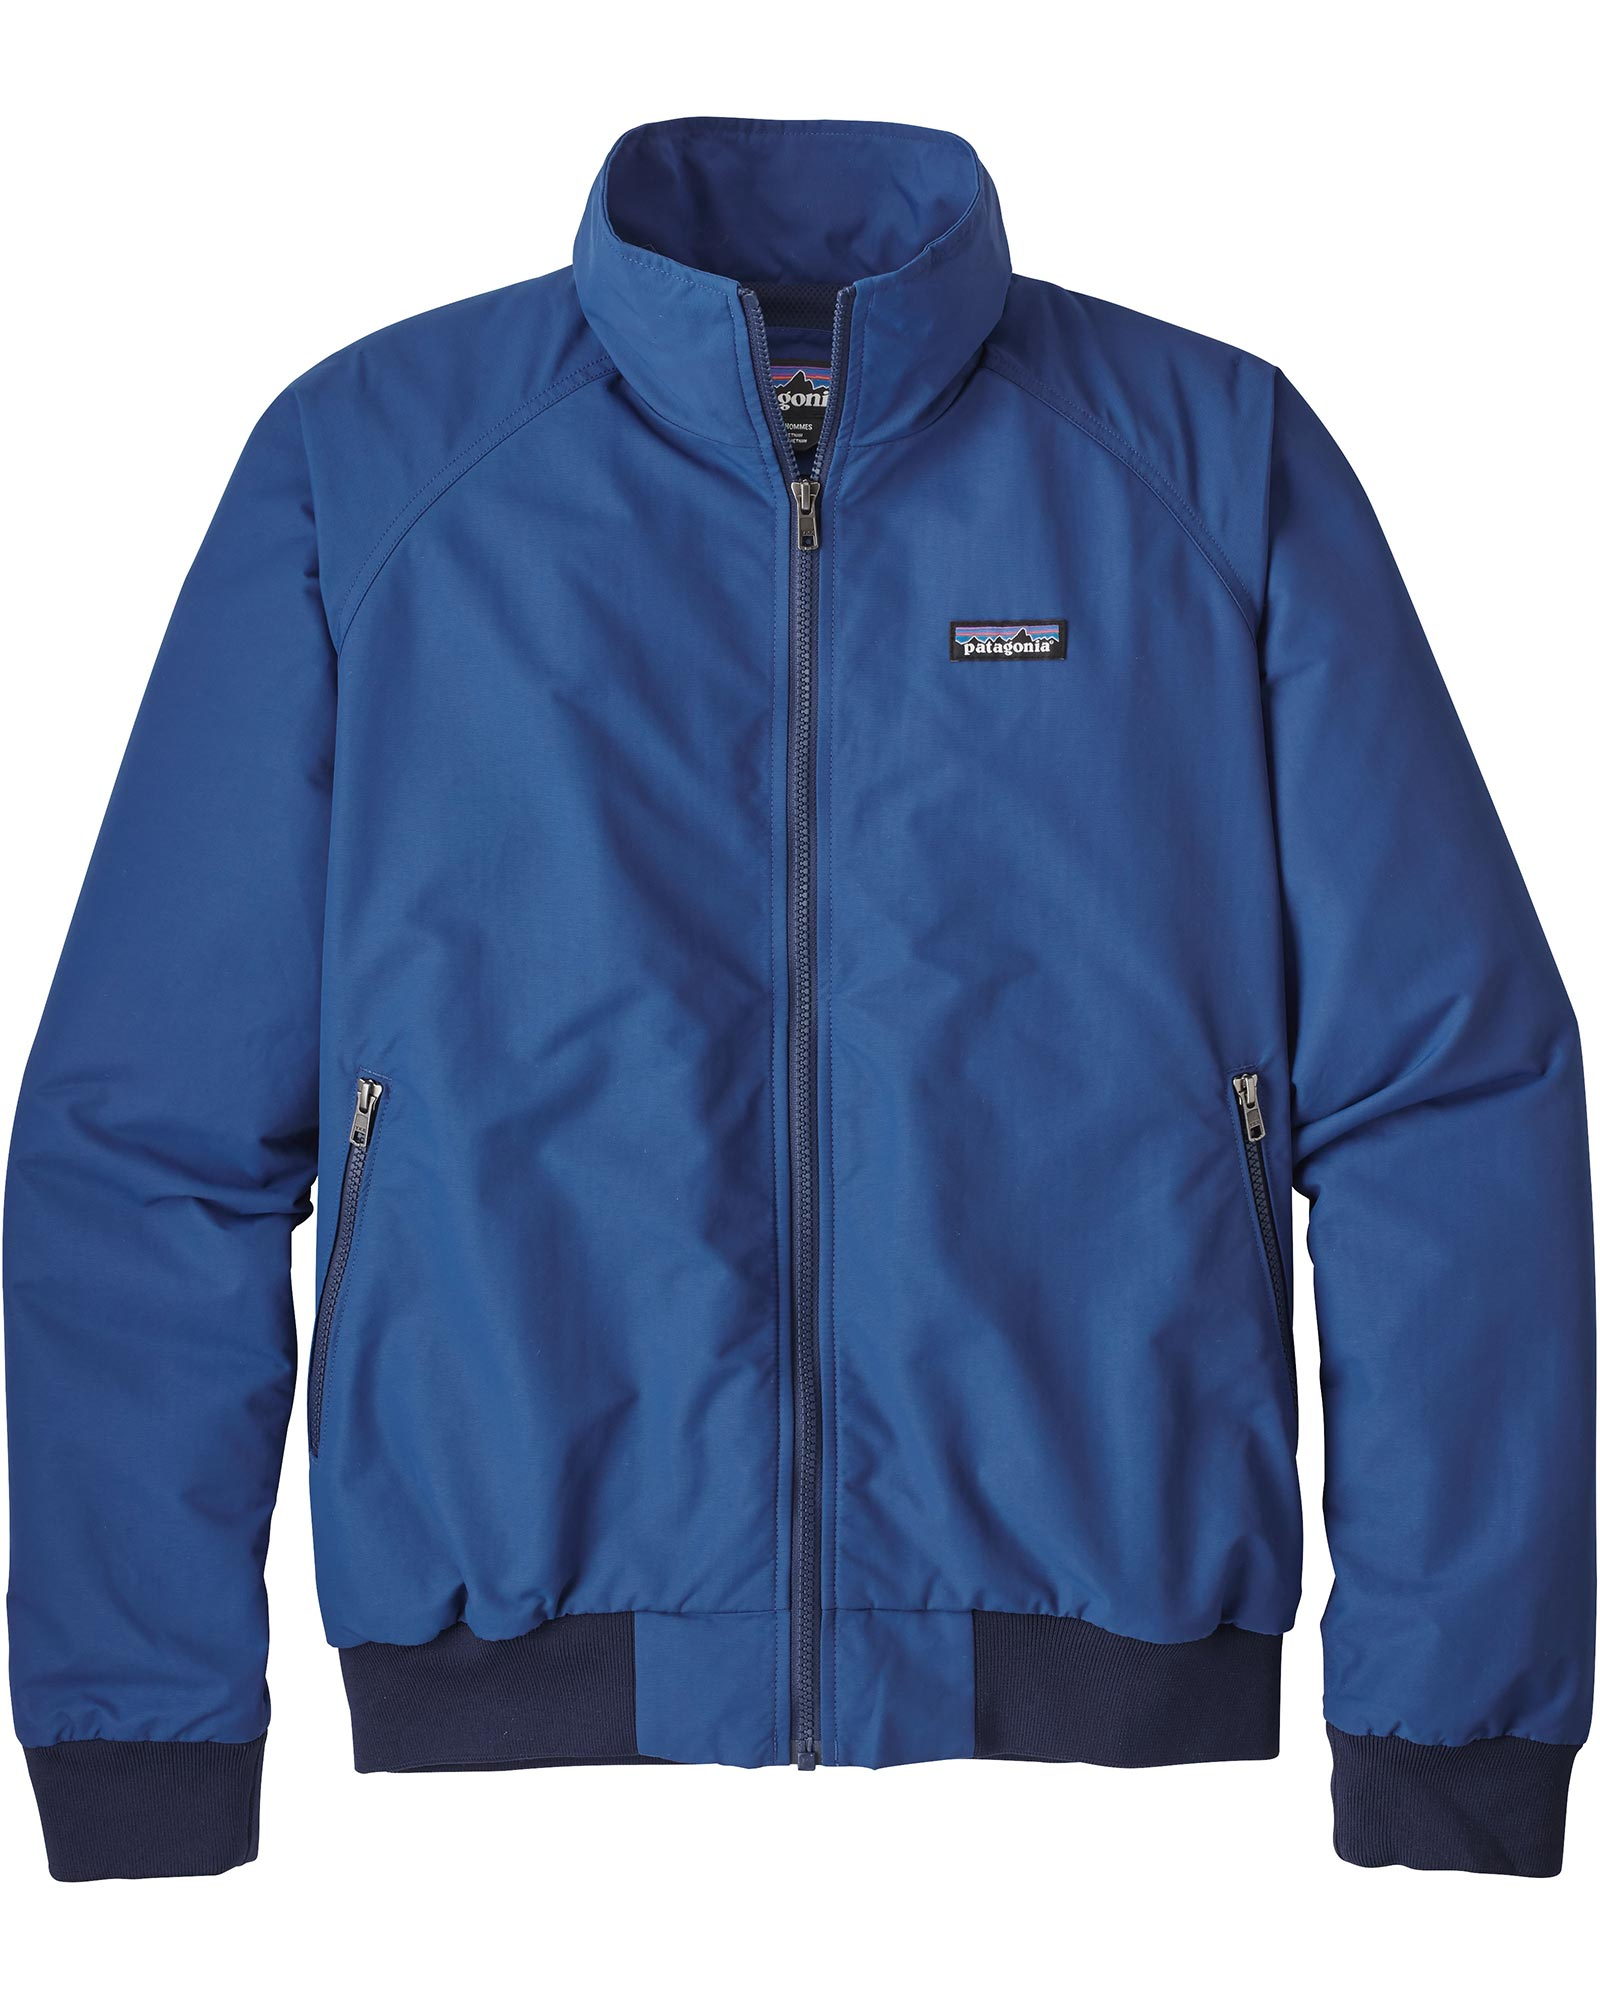 Patagonia Men's Baggies Jacket 0